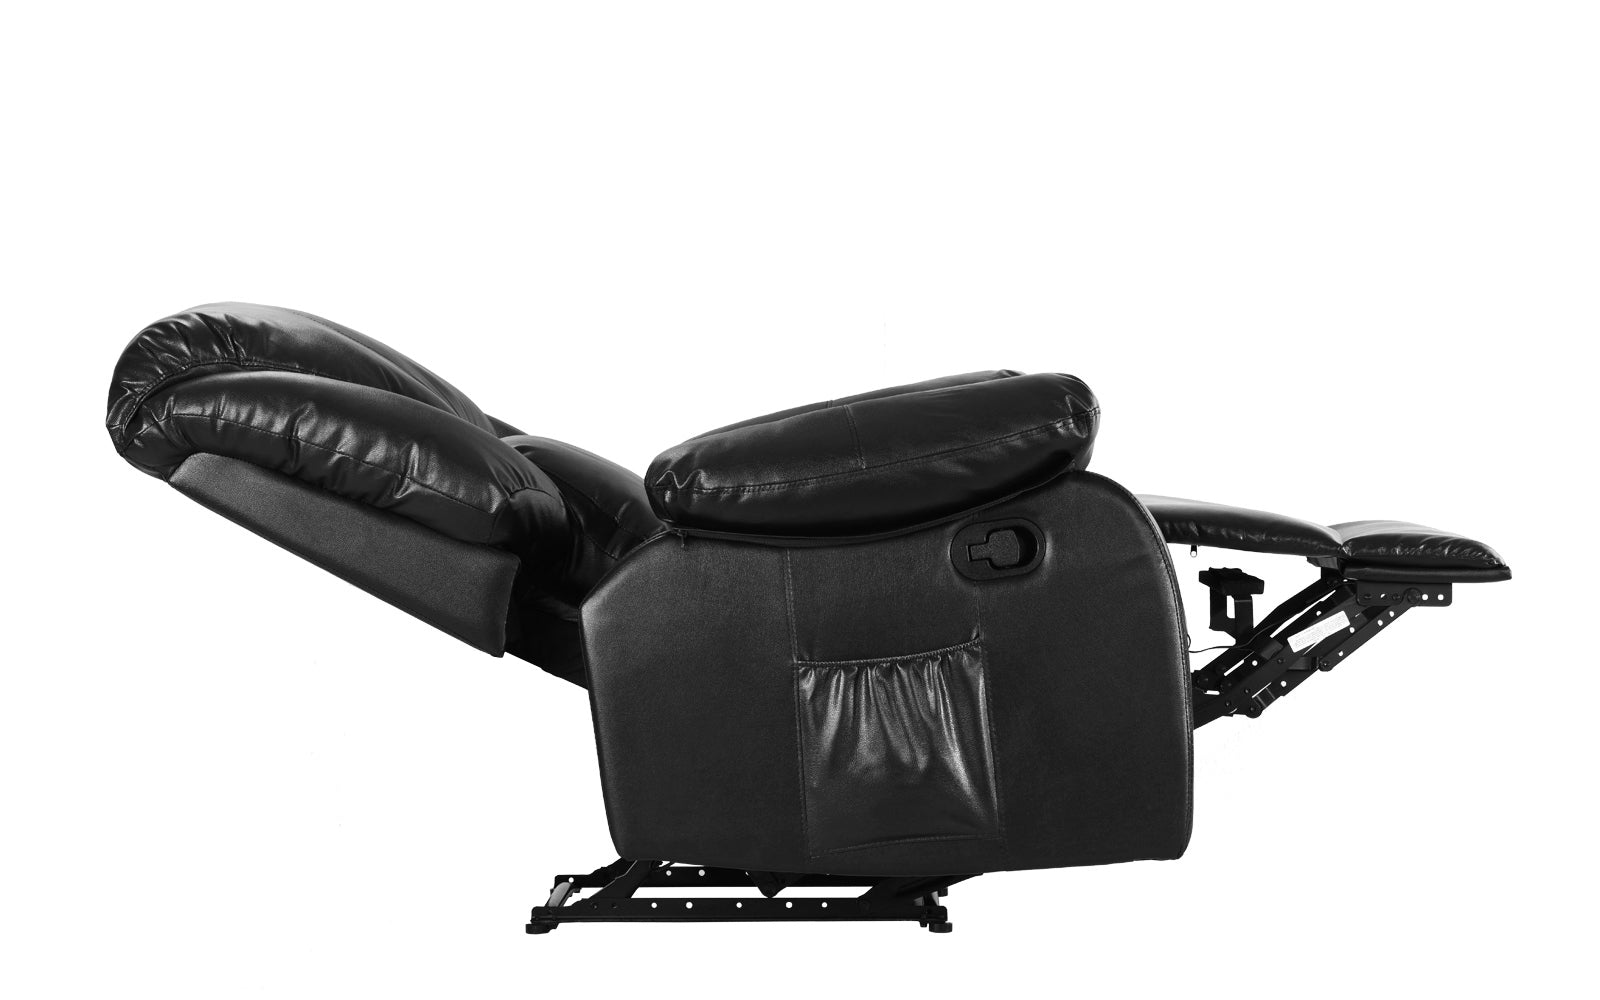 bach full body vibrating massage leather recliner sofamania com